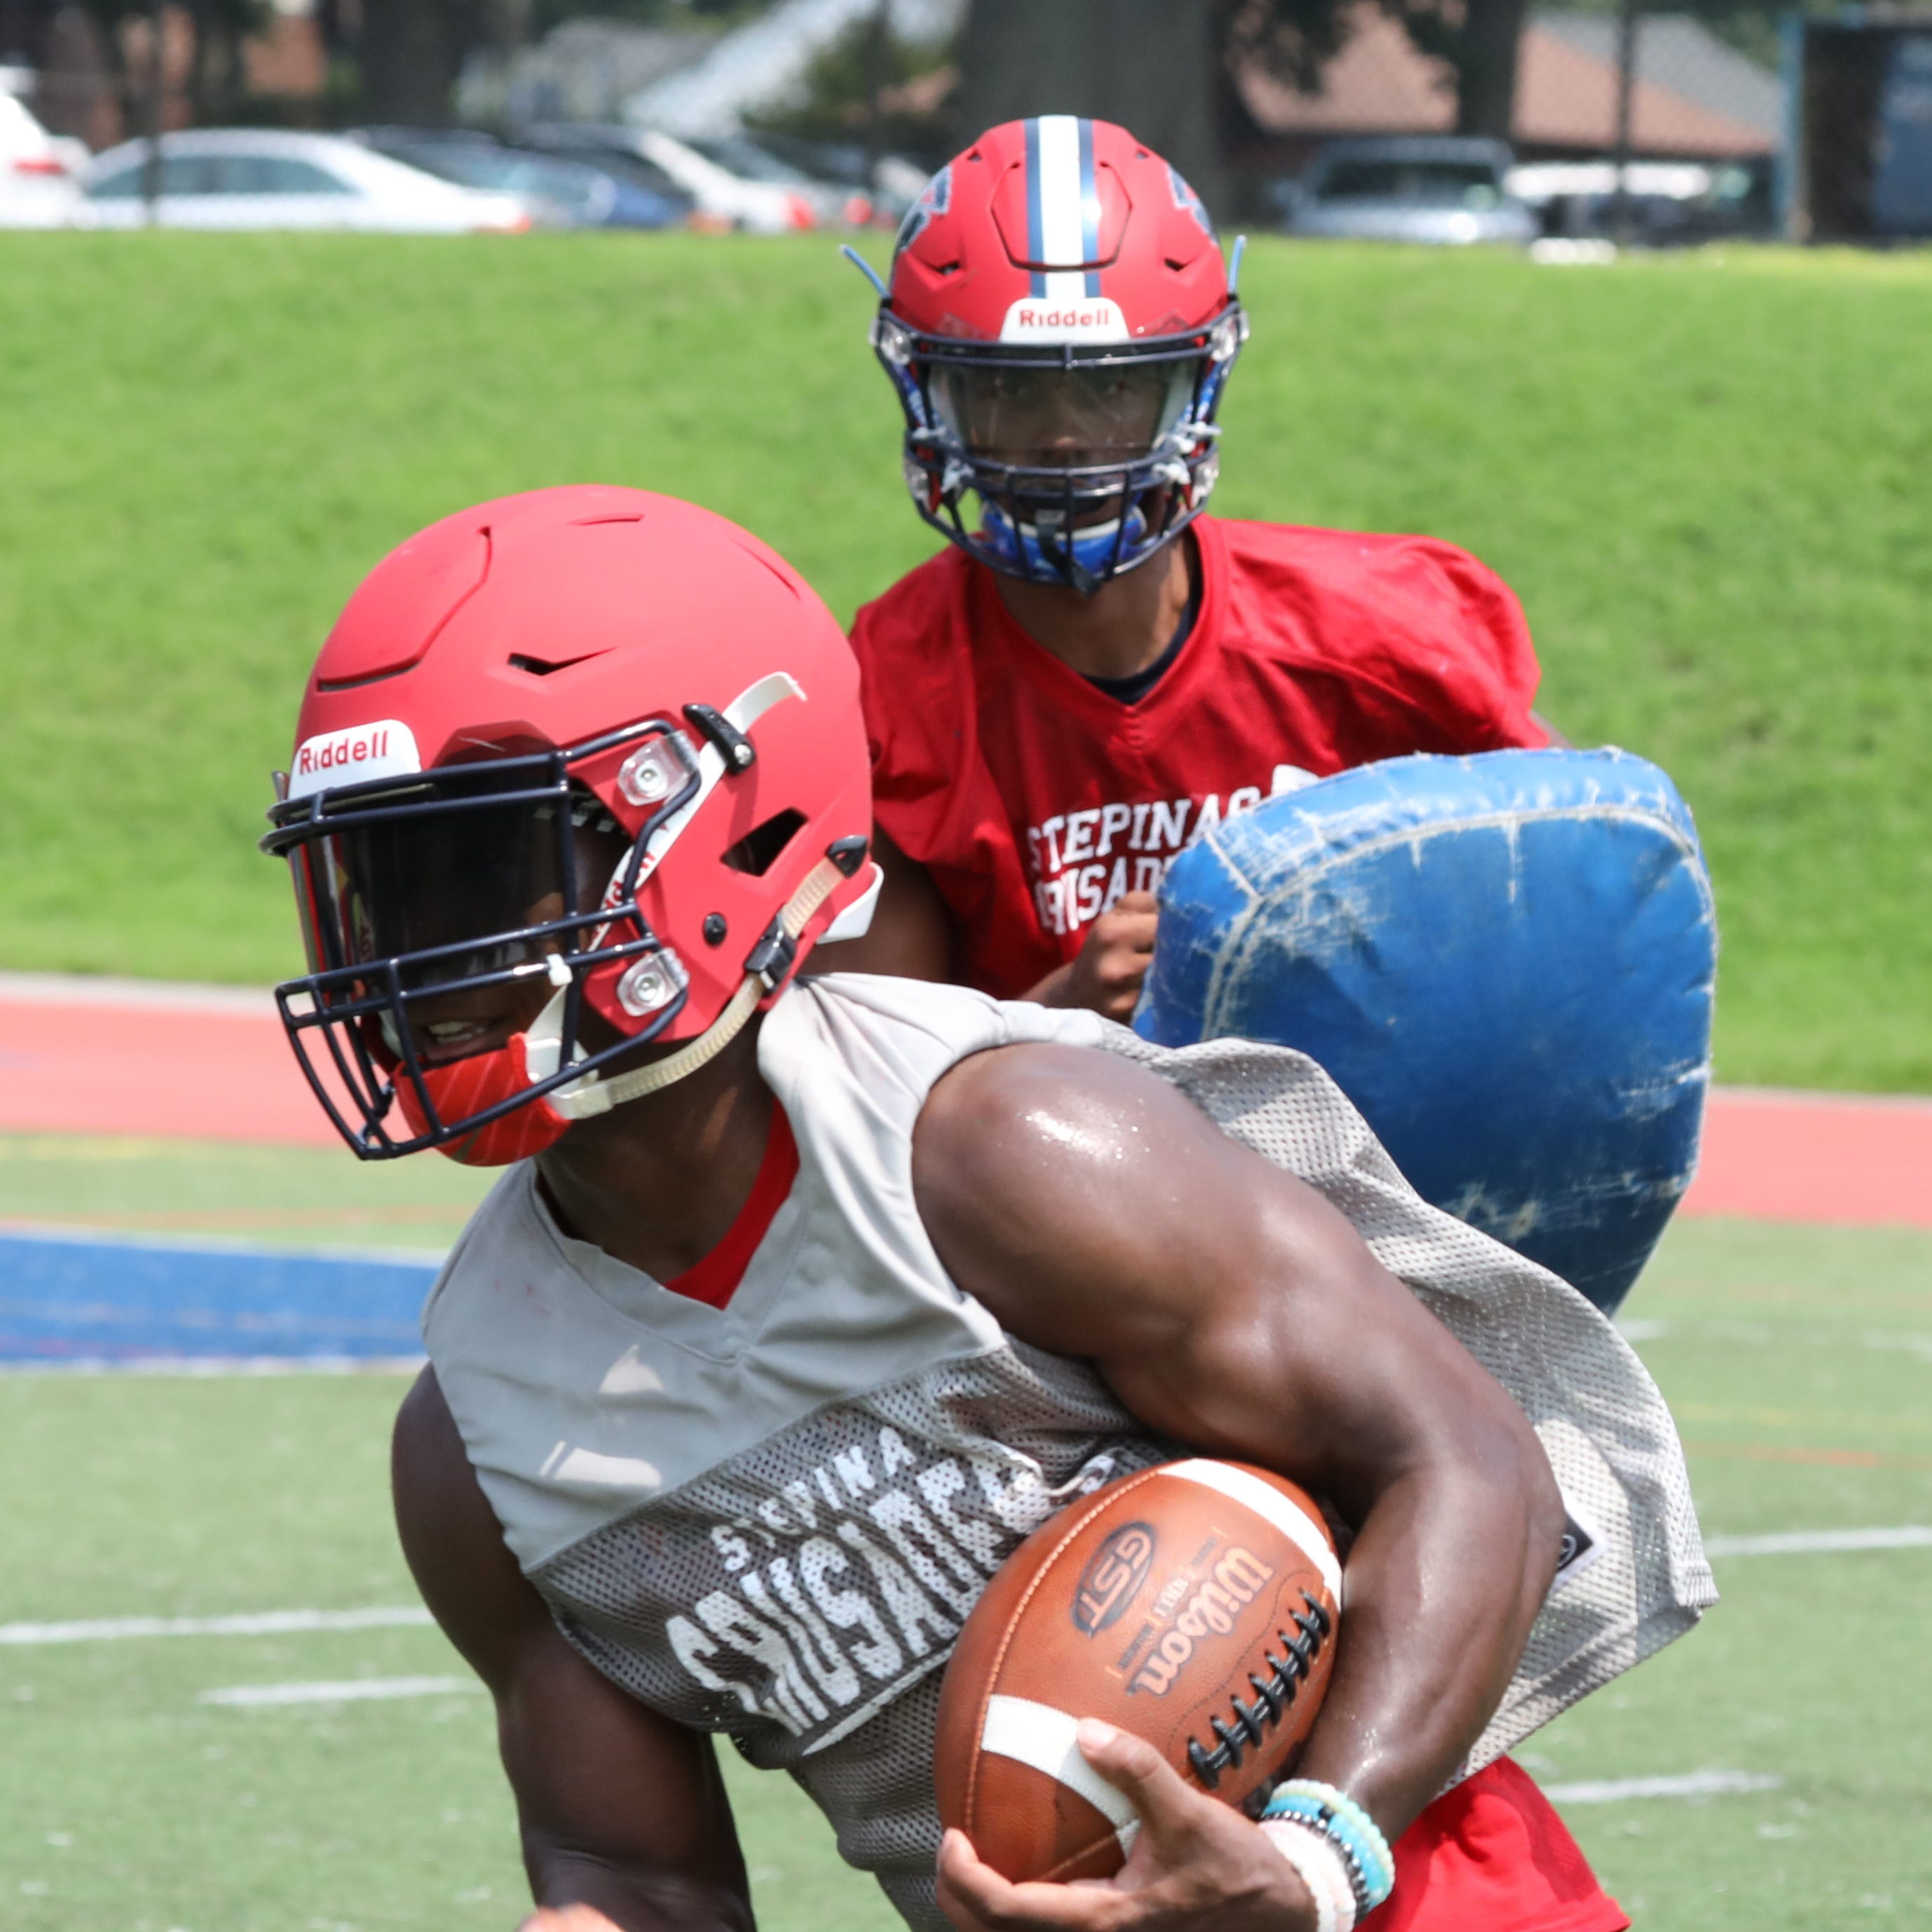 Football: Despite loss of Trill Williams, others, Stepinac anticipates no drop off